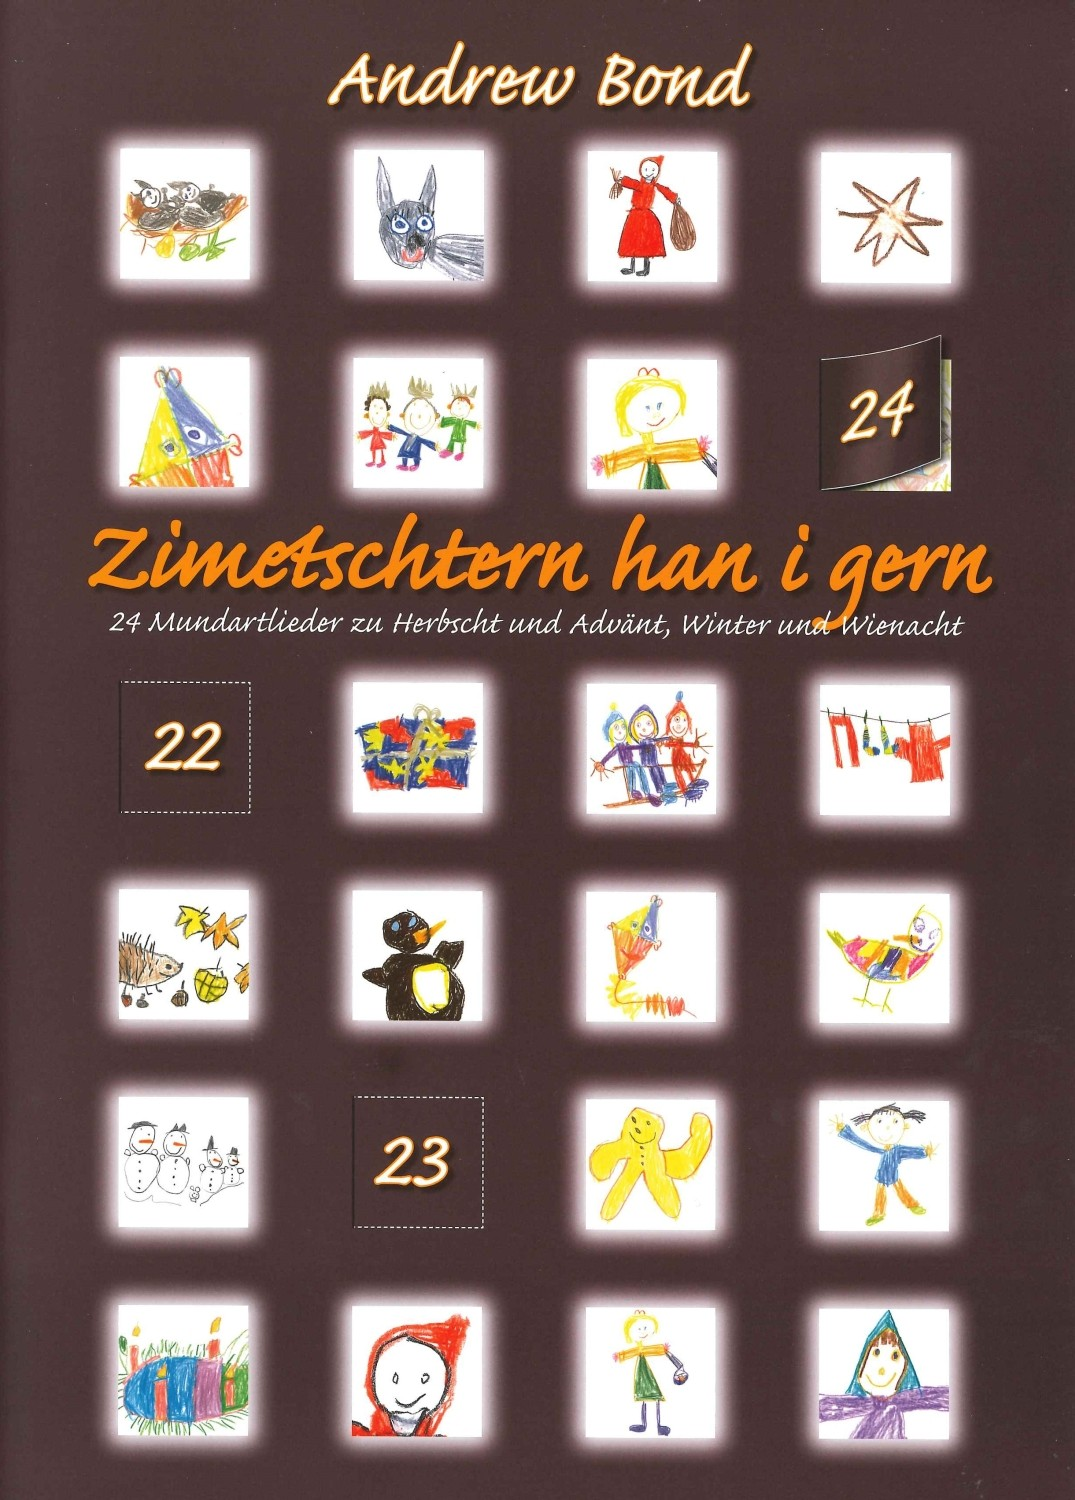 Preview image for LOM object Zimetschtern han i gern